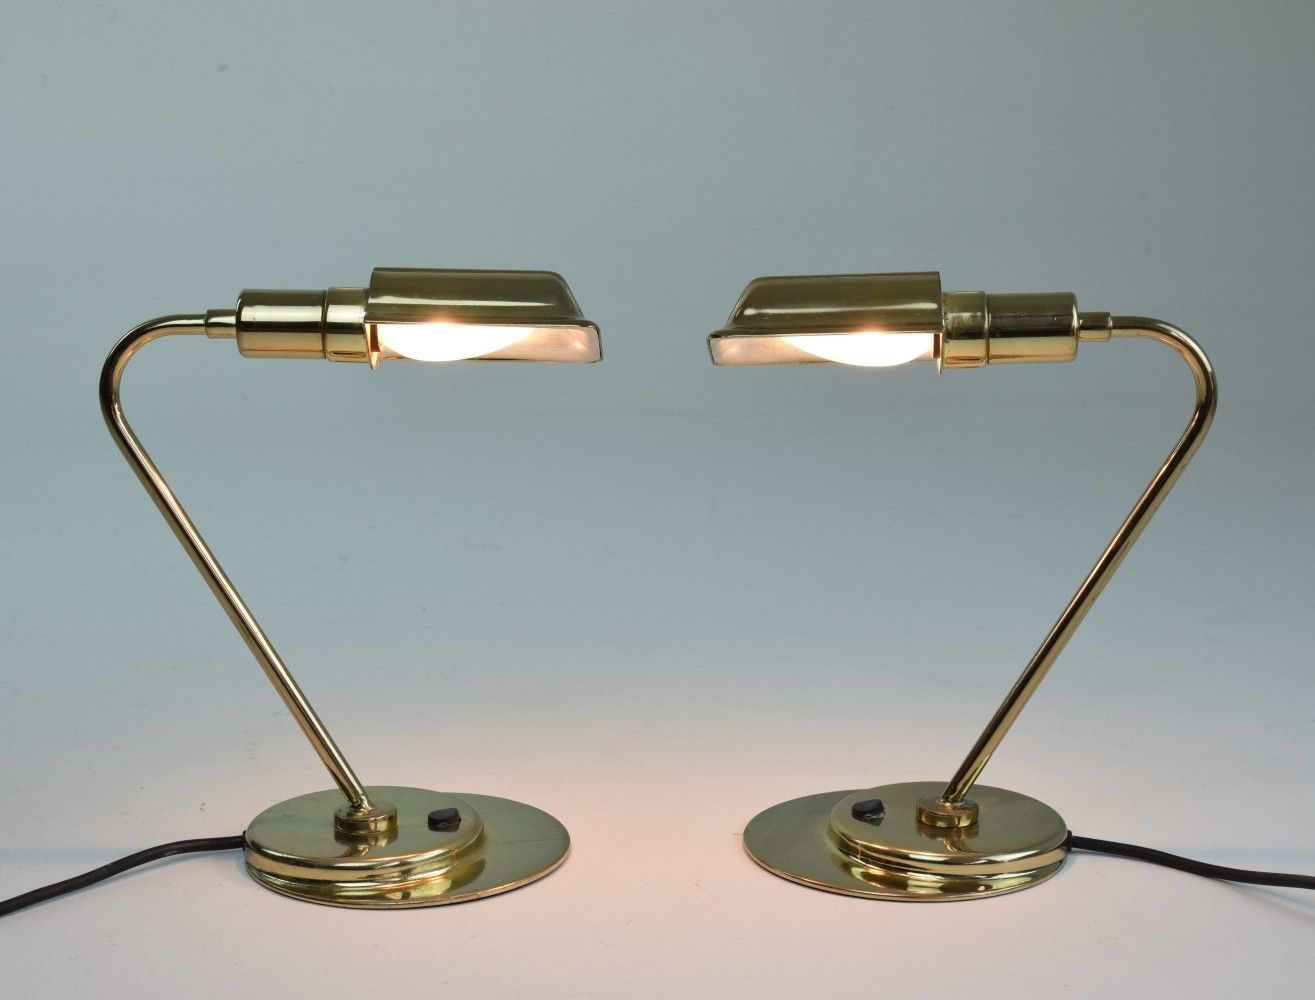 Pair Of Mid Century French Brass Desk Lamps 1960s Brass Desk Lamp Desk Lamps Lamp